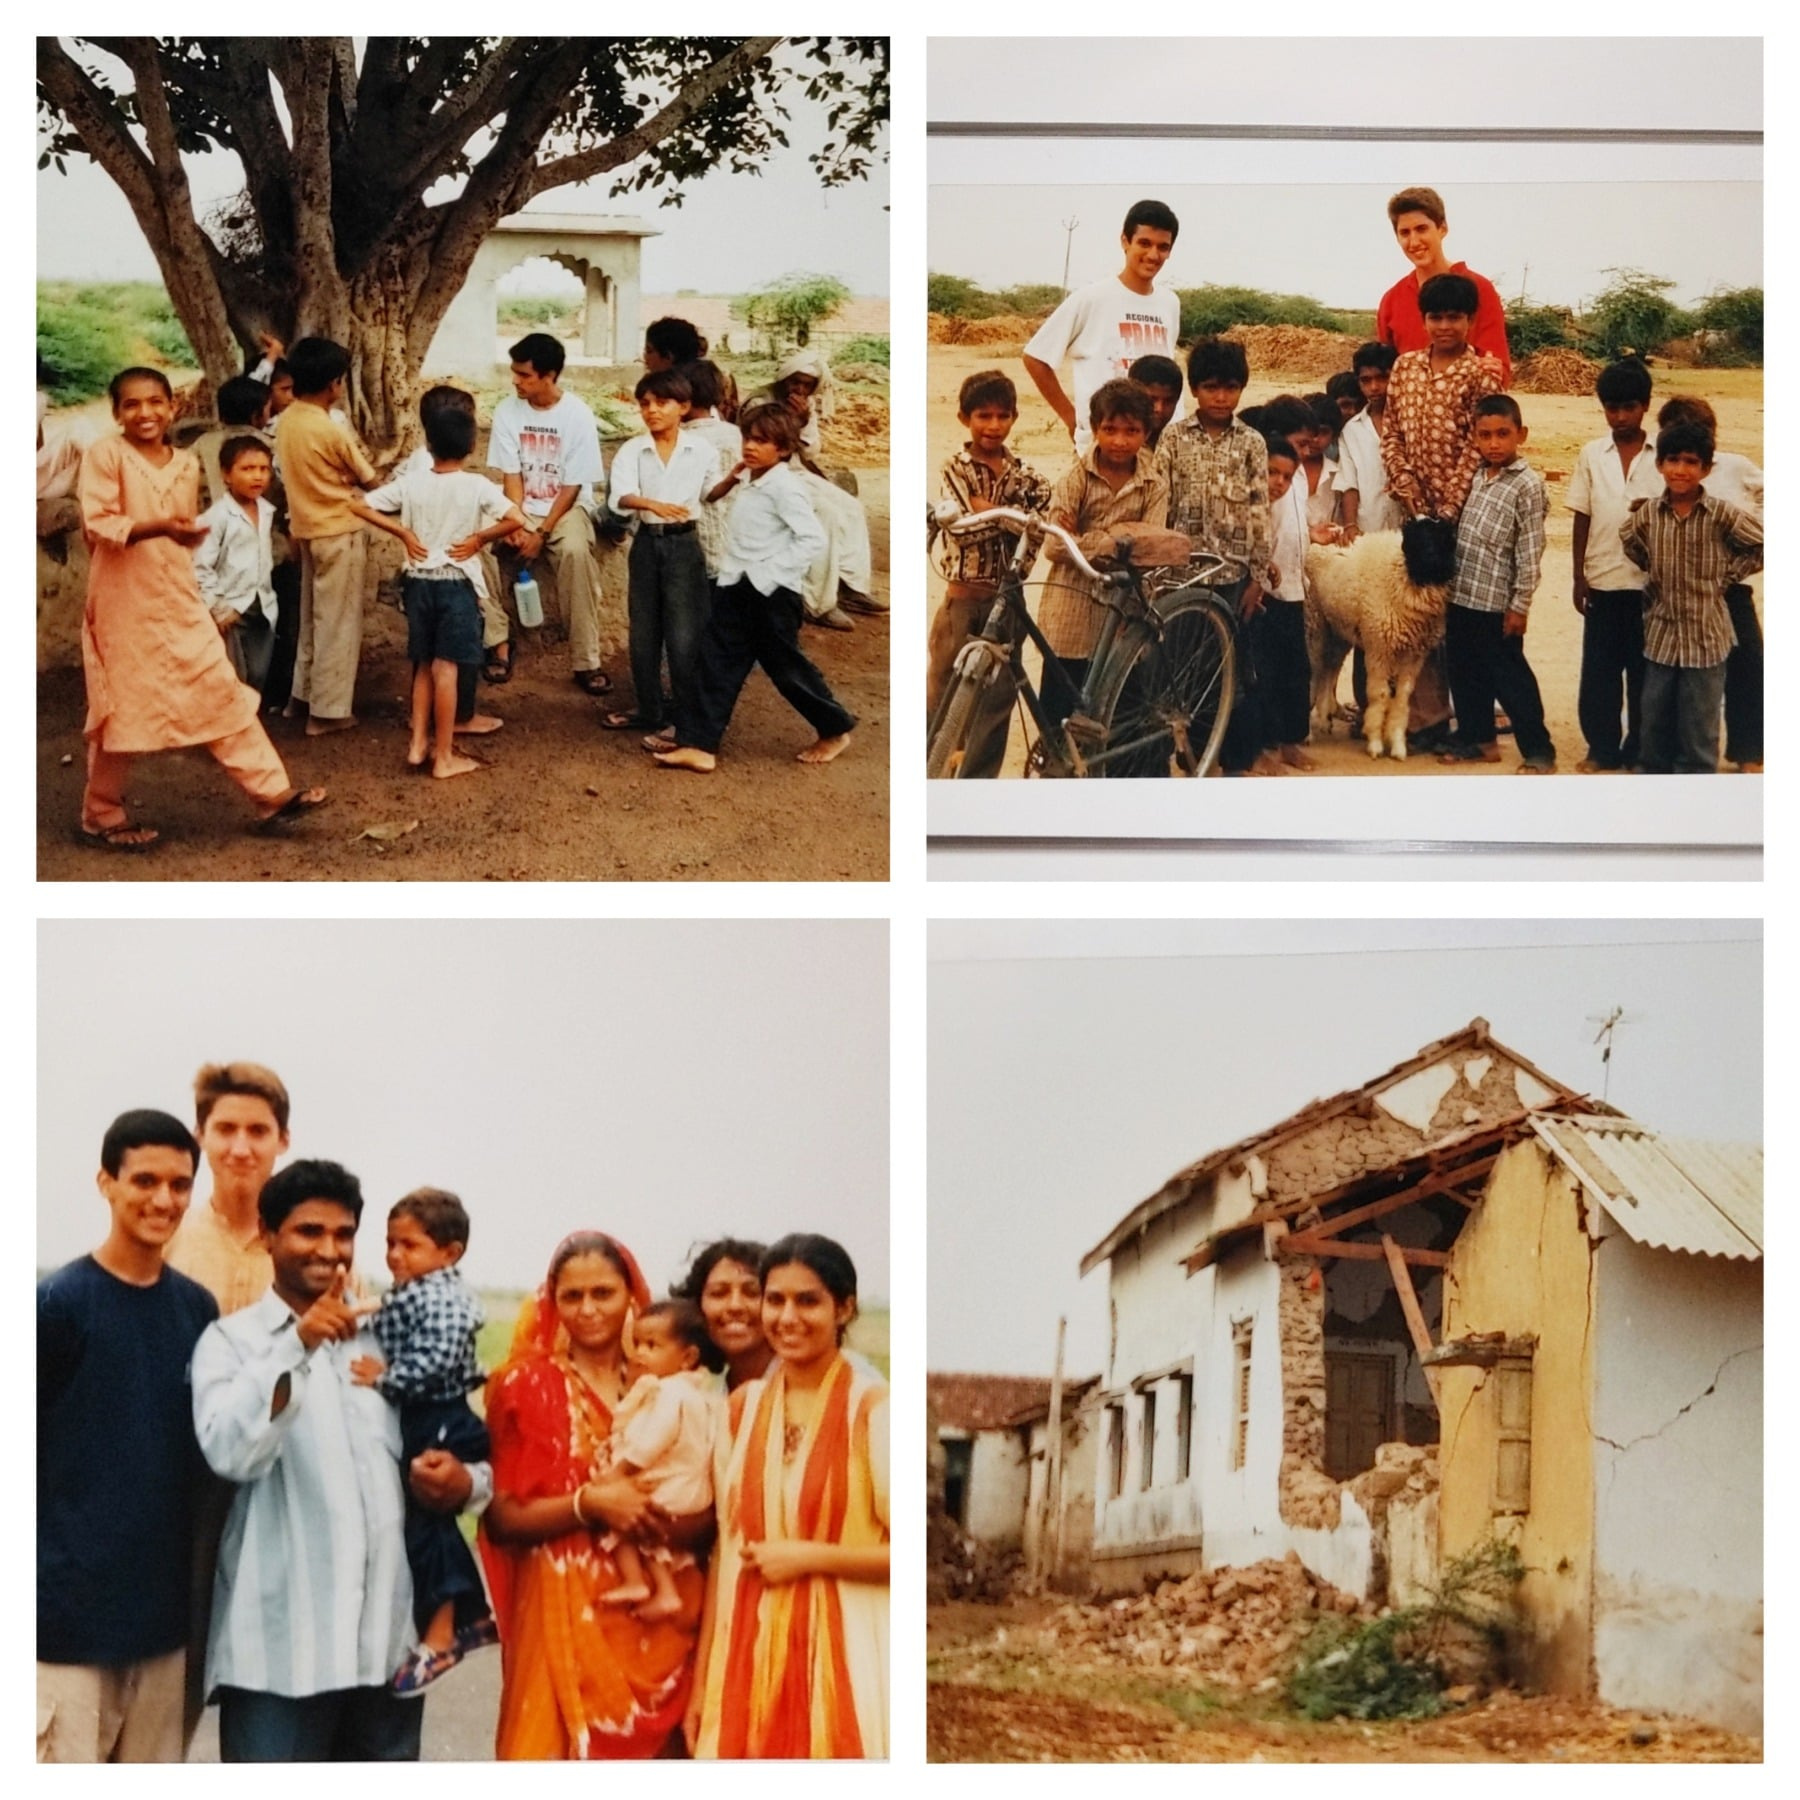 Collage of four photos. Upper left: Sachin and a group of village boys gathering around a tree outside. Upper right: Sachin and his co-Fellow standing with a group of boys and farm animals. Lower left: Sachin with a group of women in saris and a man holding a child in his arms, all smiling for the camera. Lower right: house with the back wall crumbled in.